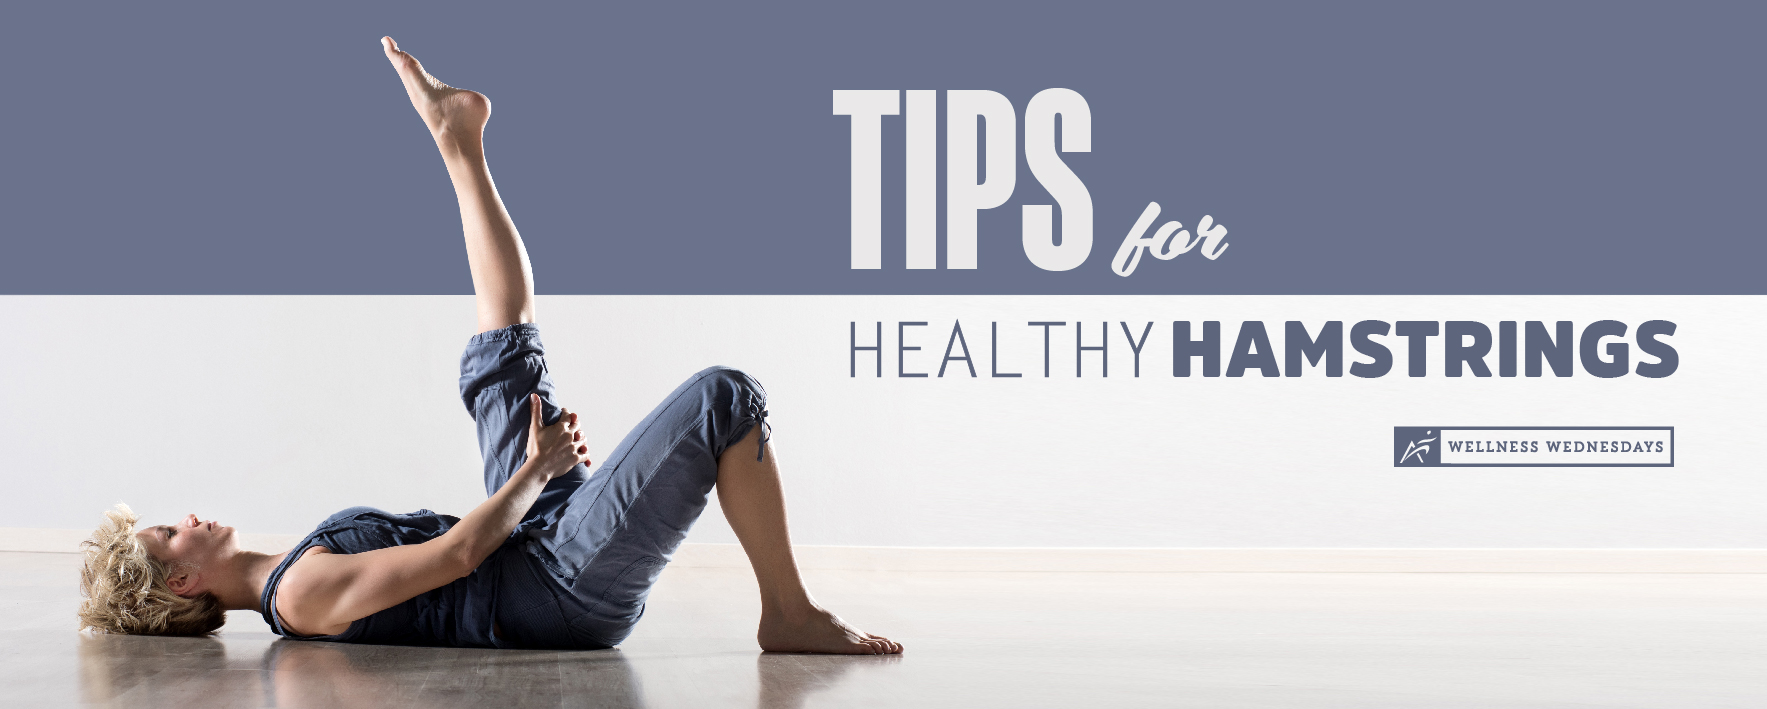 Tips for Healthy Hamstrings